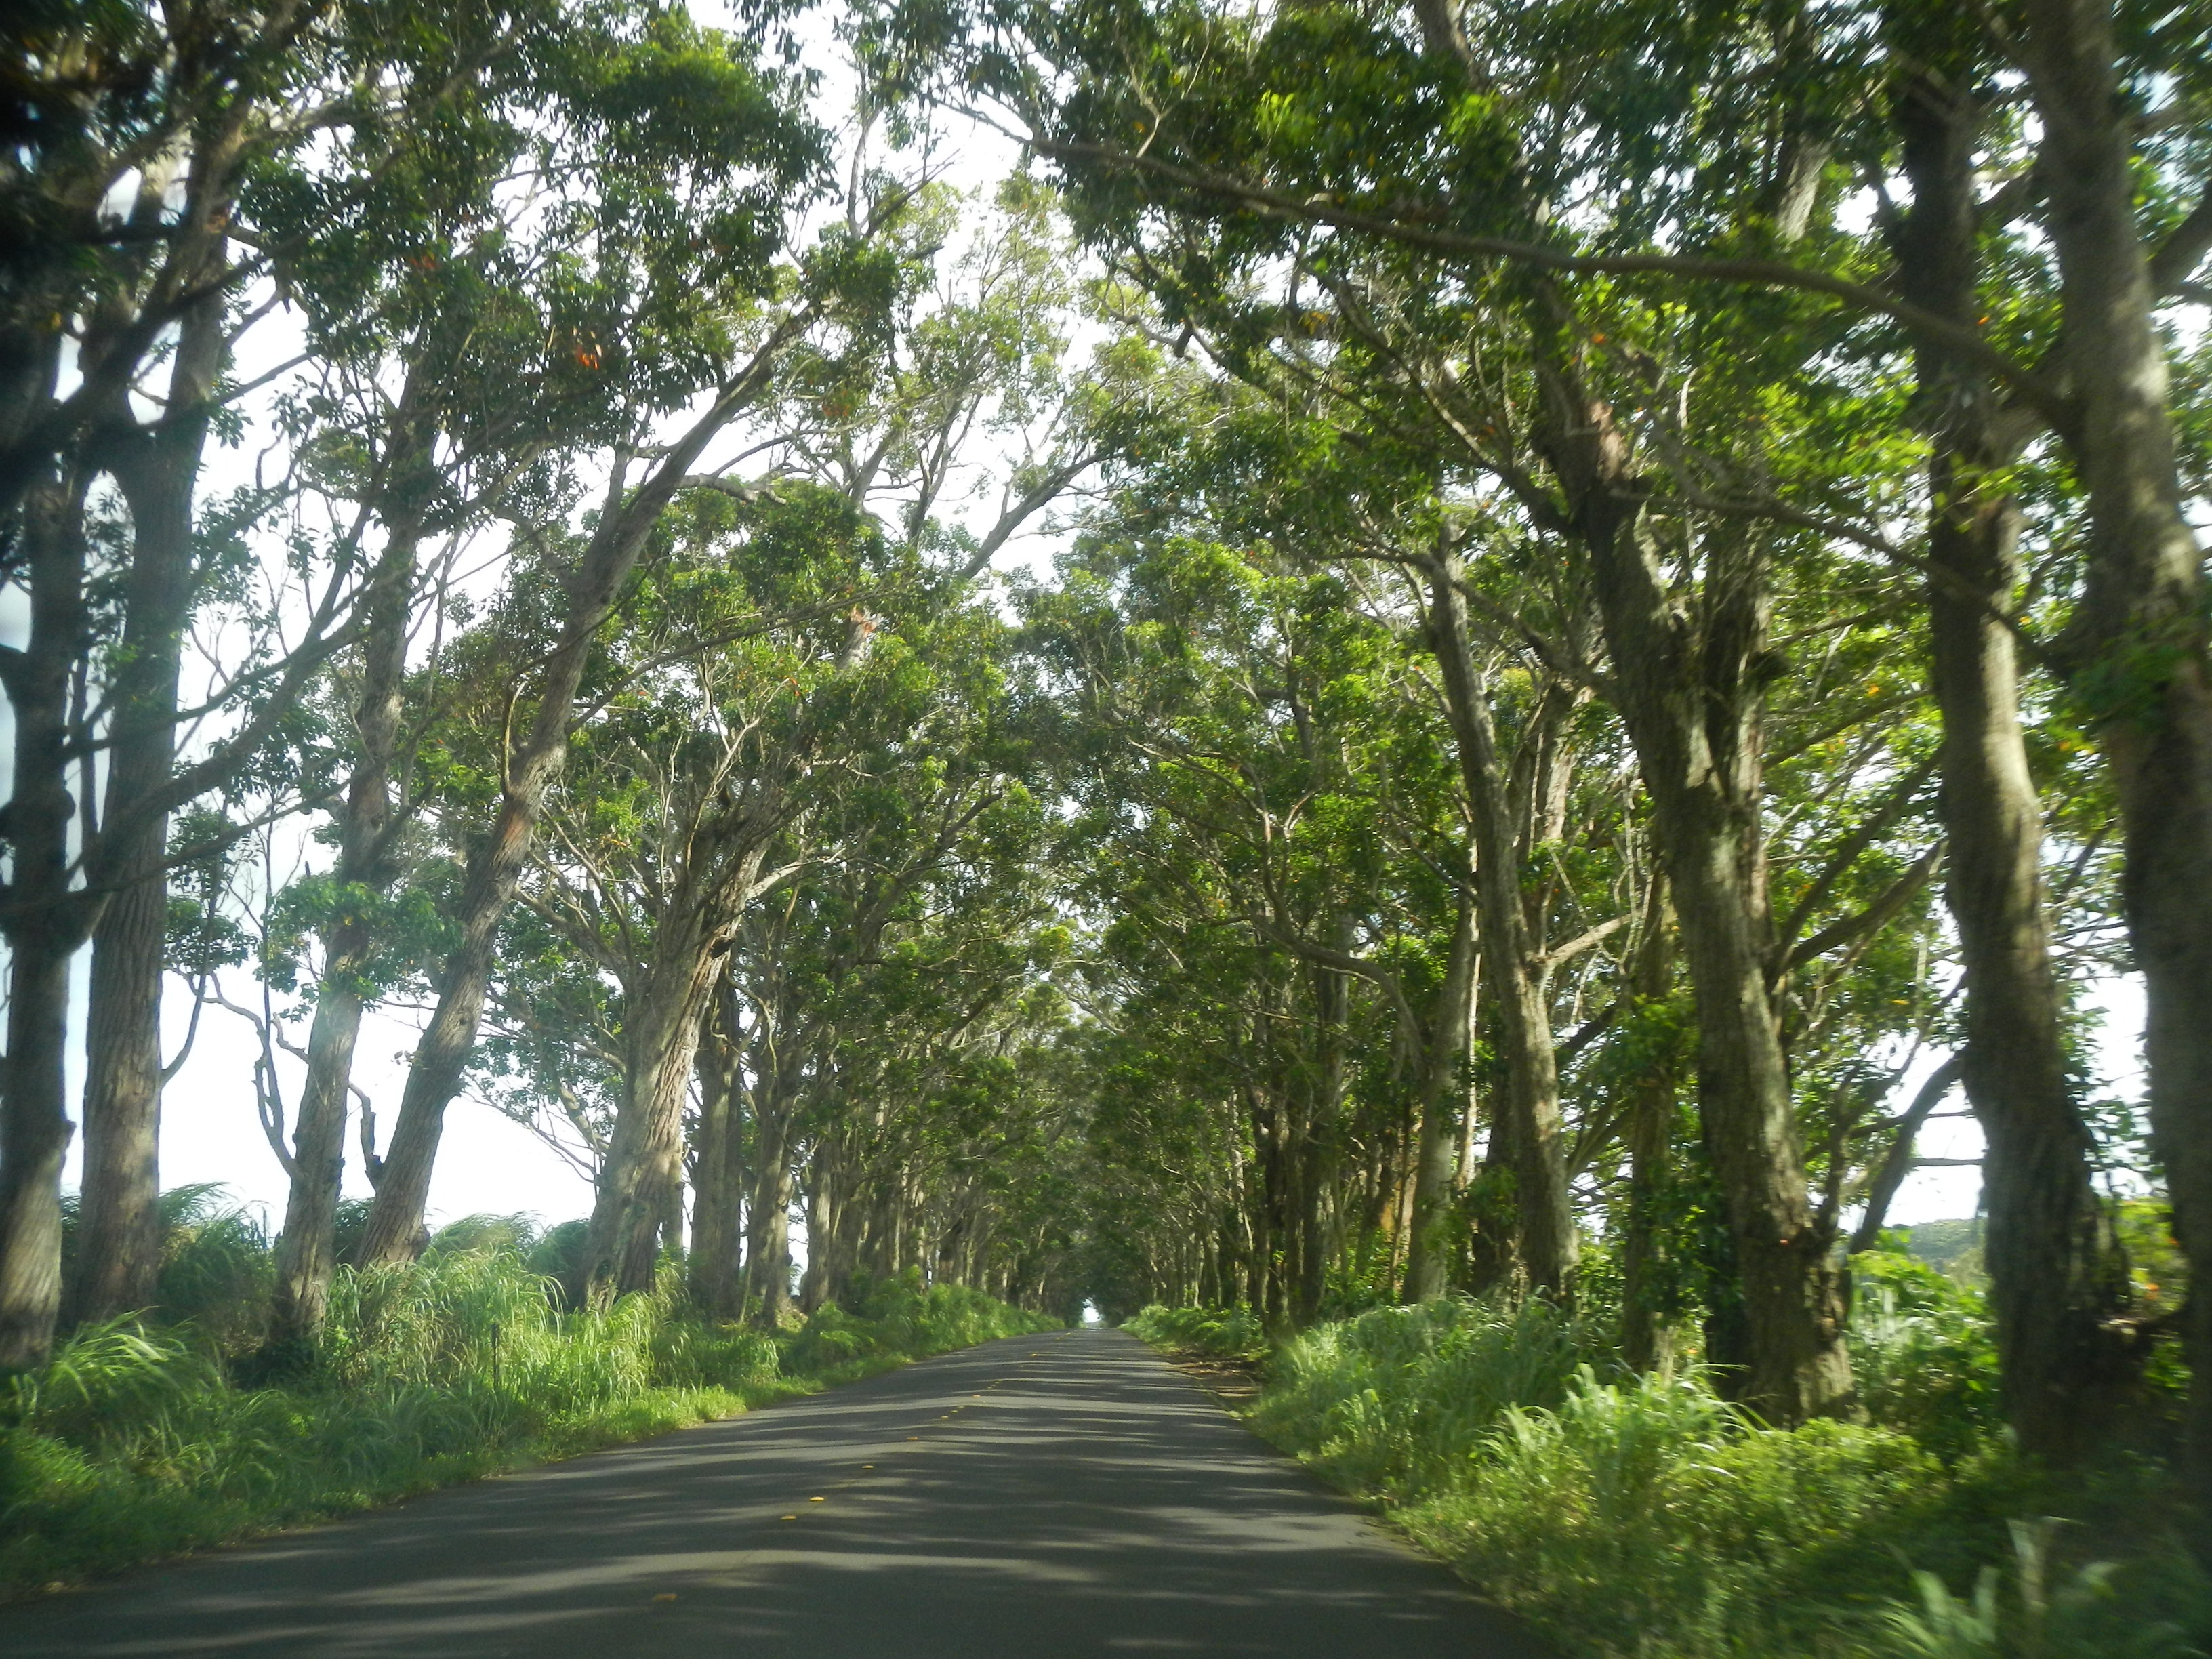 Tunnel of Trees on way to Poipu